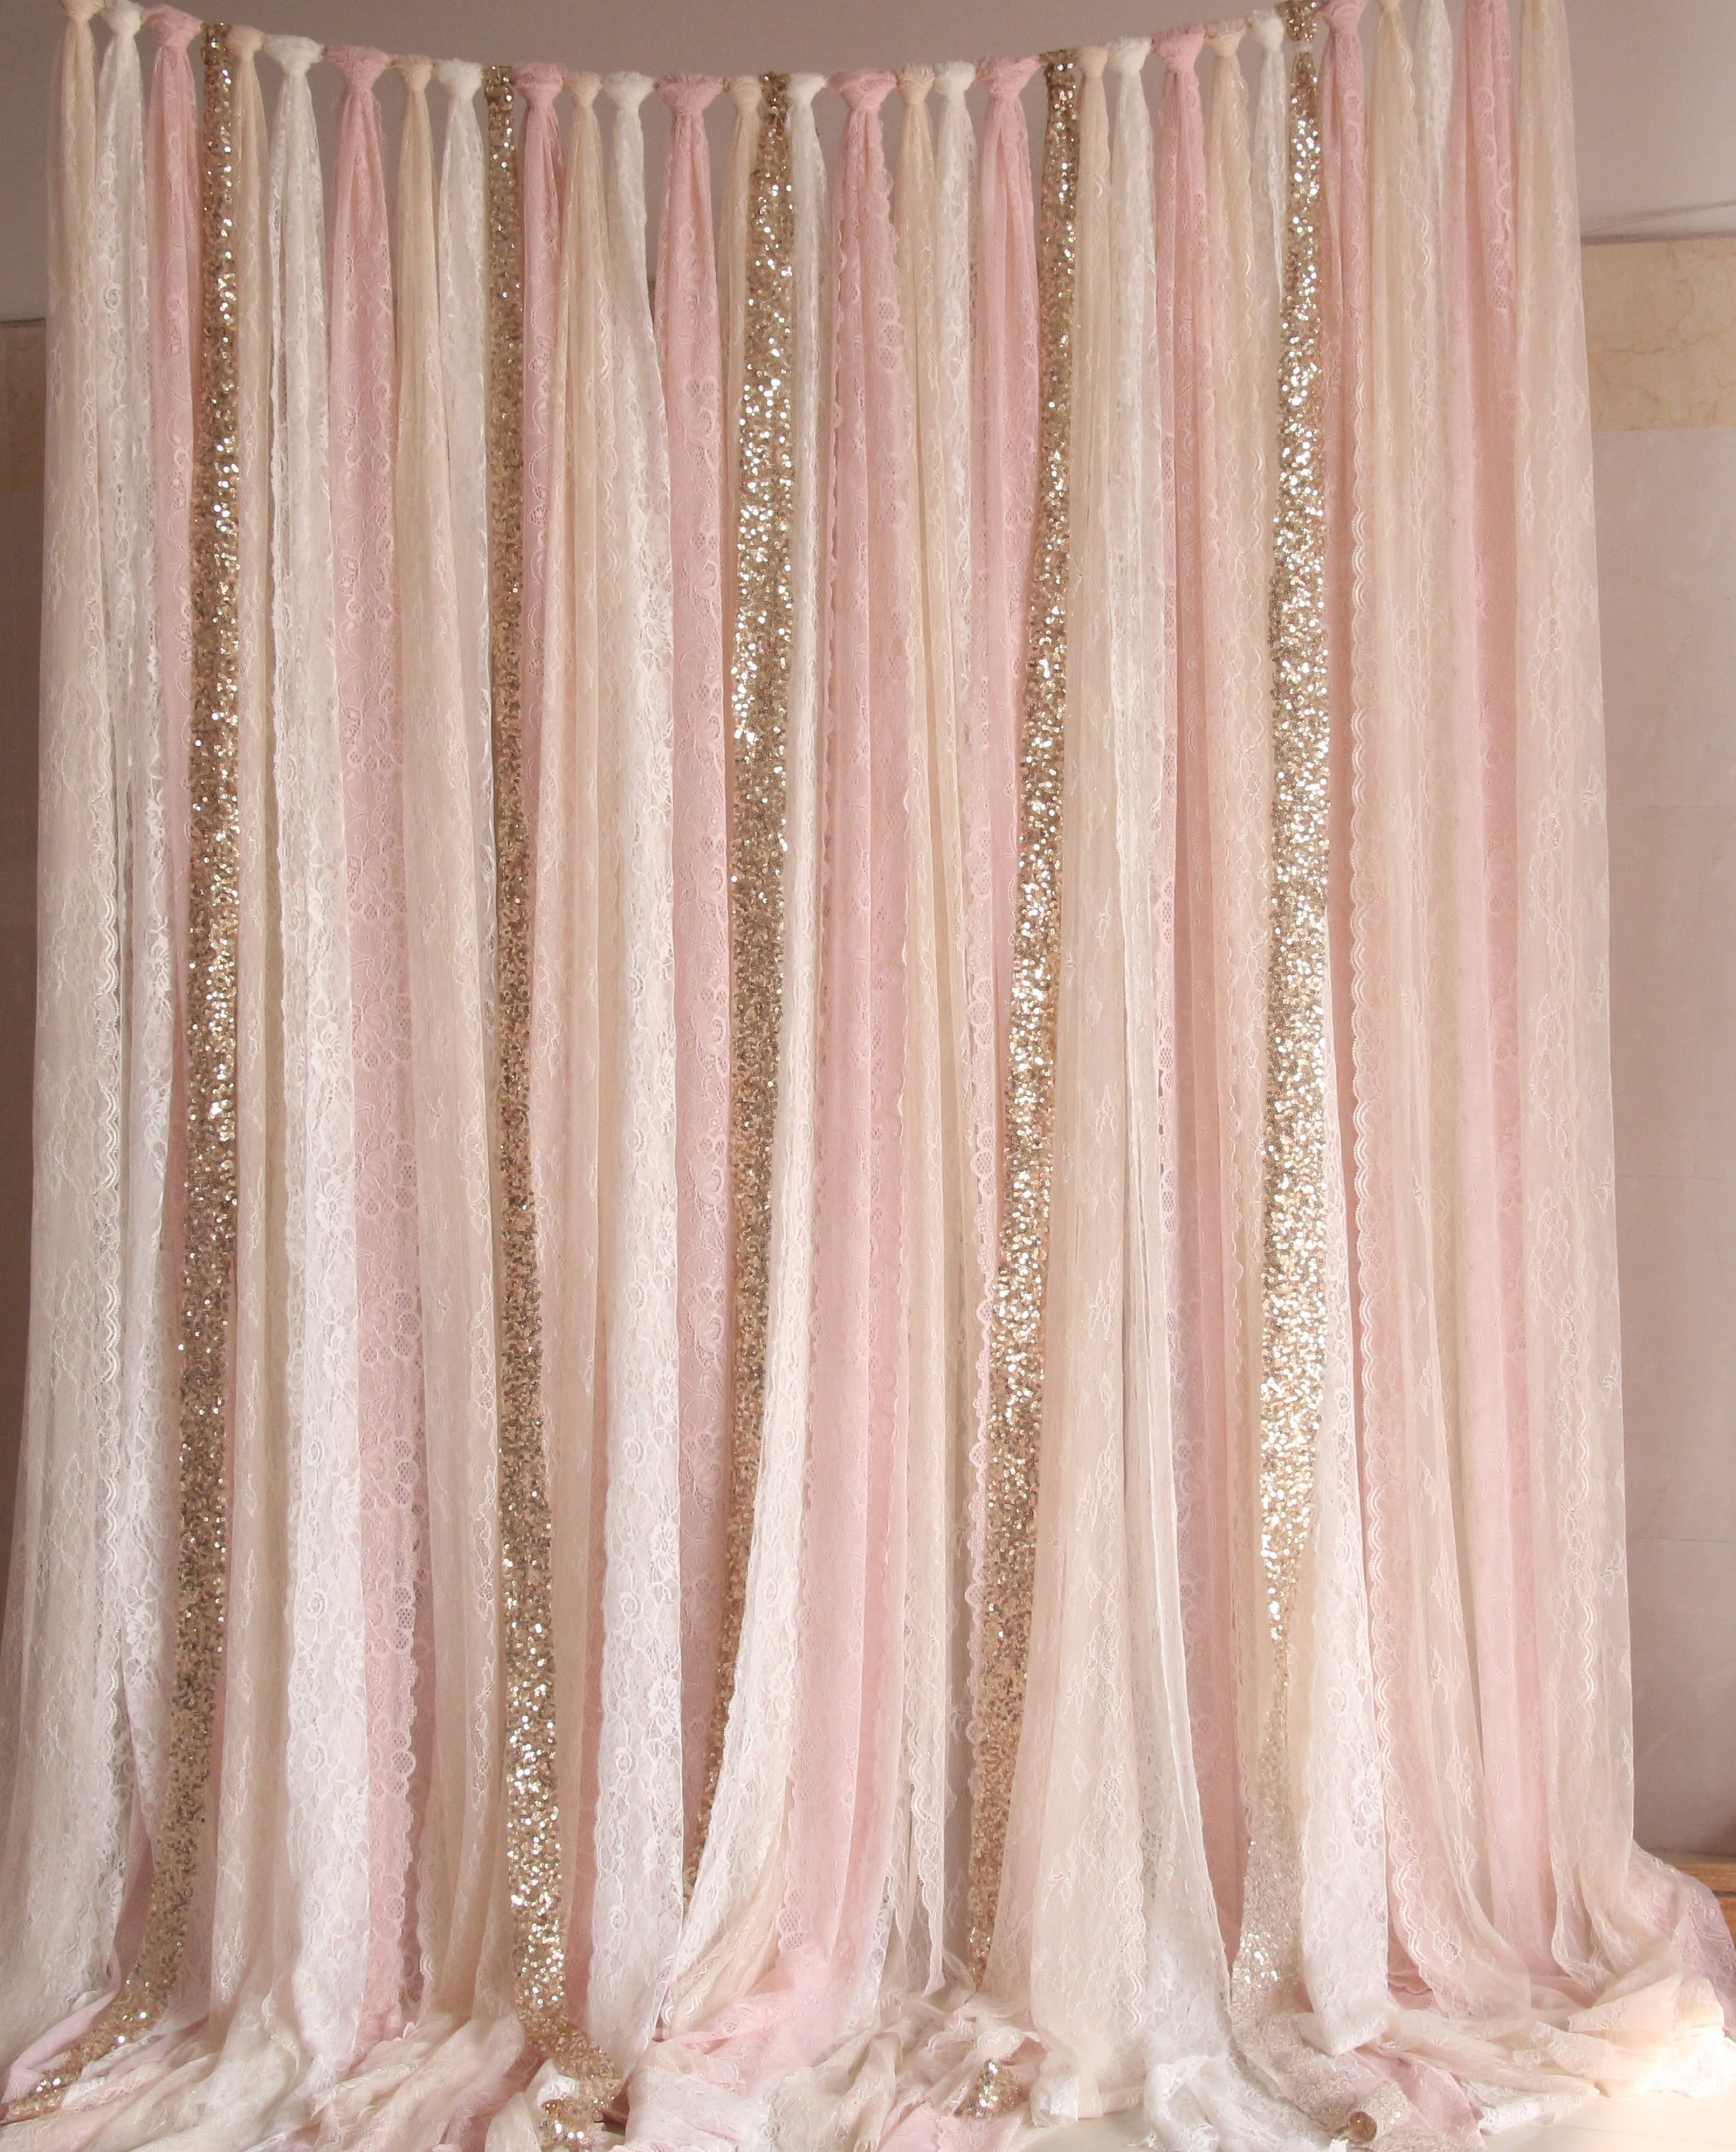 Blush Pink White Lace Fabric Gold Sparkle Photobooth Backdrop Wedding Ceremony Stage Birthday Baby Shower Backdrop Party Curtain Nursery Photo Booth Backdrop Wedding Backdrops For Parties Baby Shower Backdrop